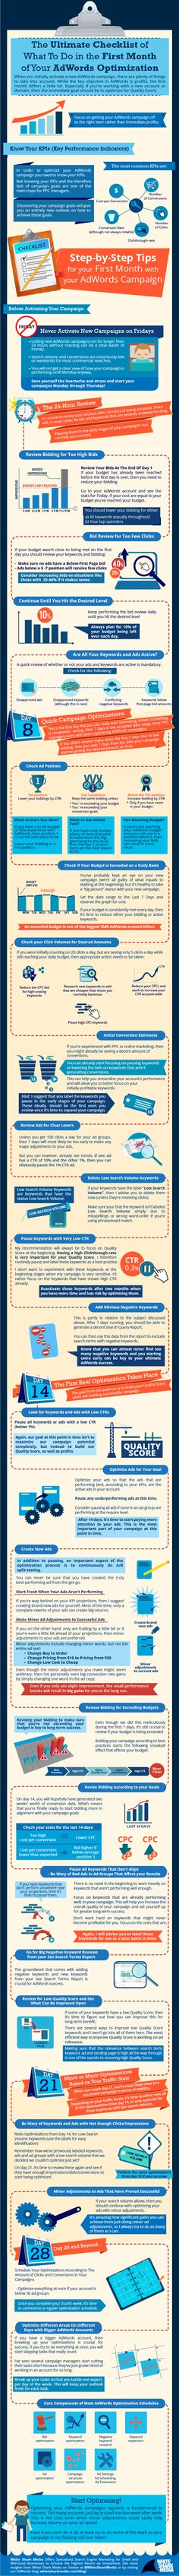 The Ultimate Checklist on How to Optimize Your Google AdWords Campaign in the First Month #Infographic #yvlcm